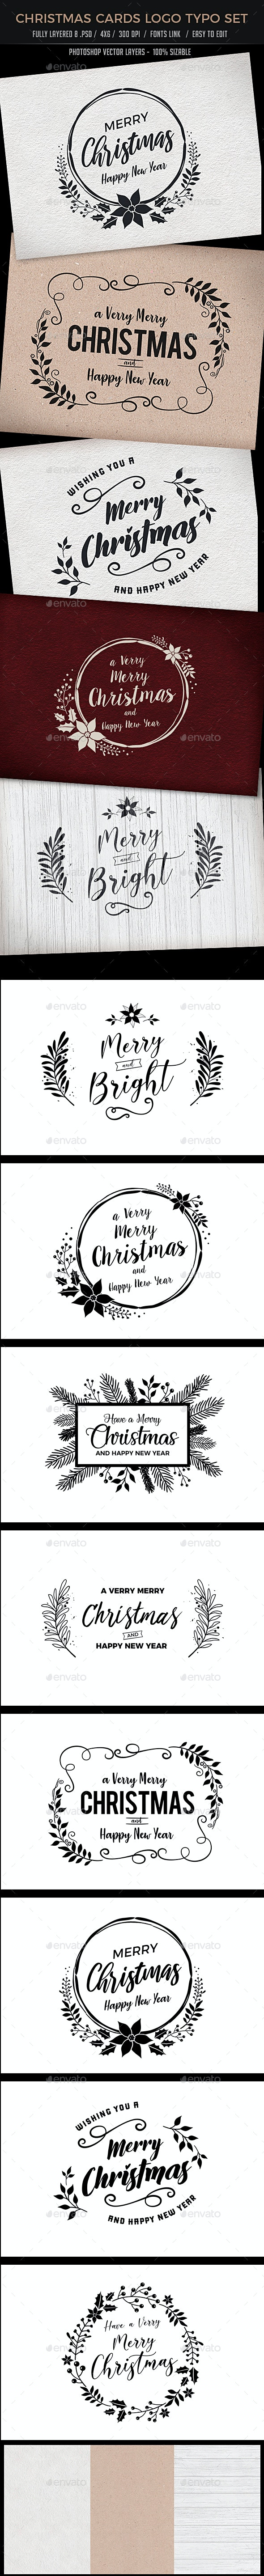 Christmas Cards Logo Typo Set - Backgrounds Graphics